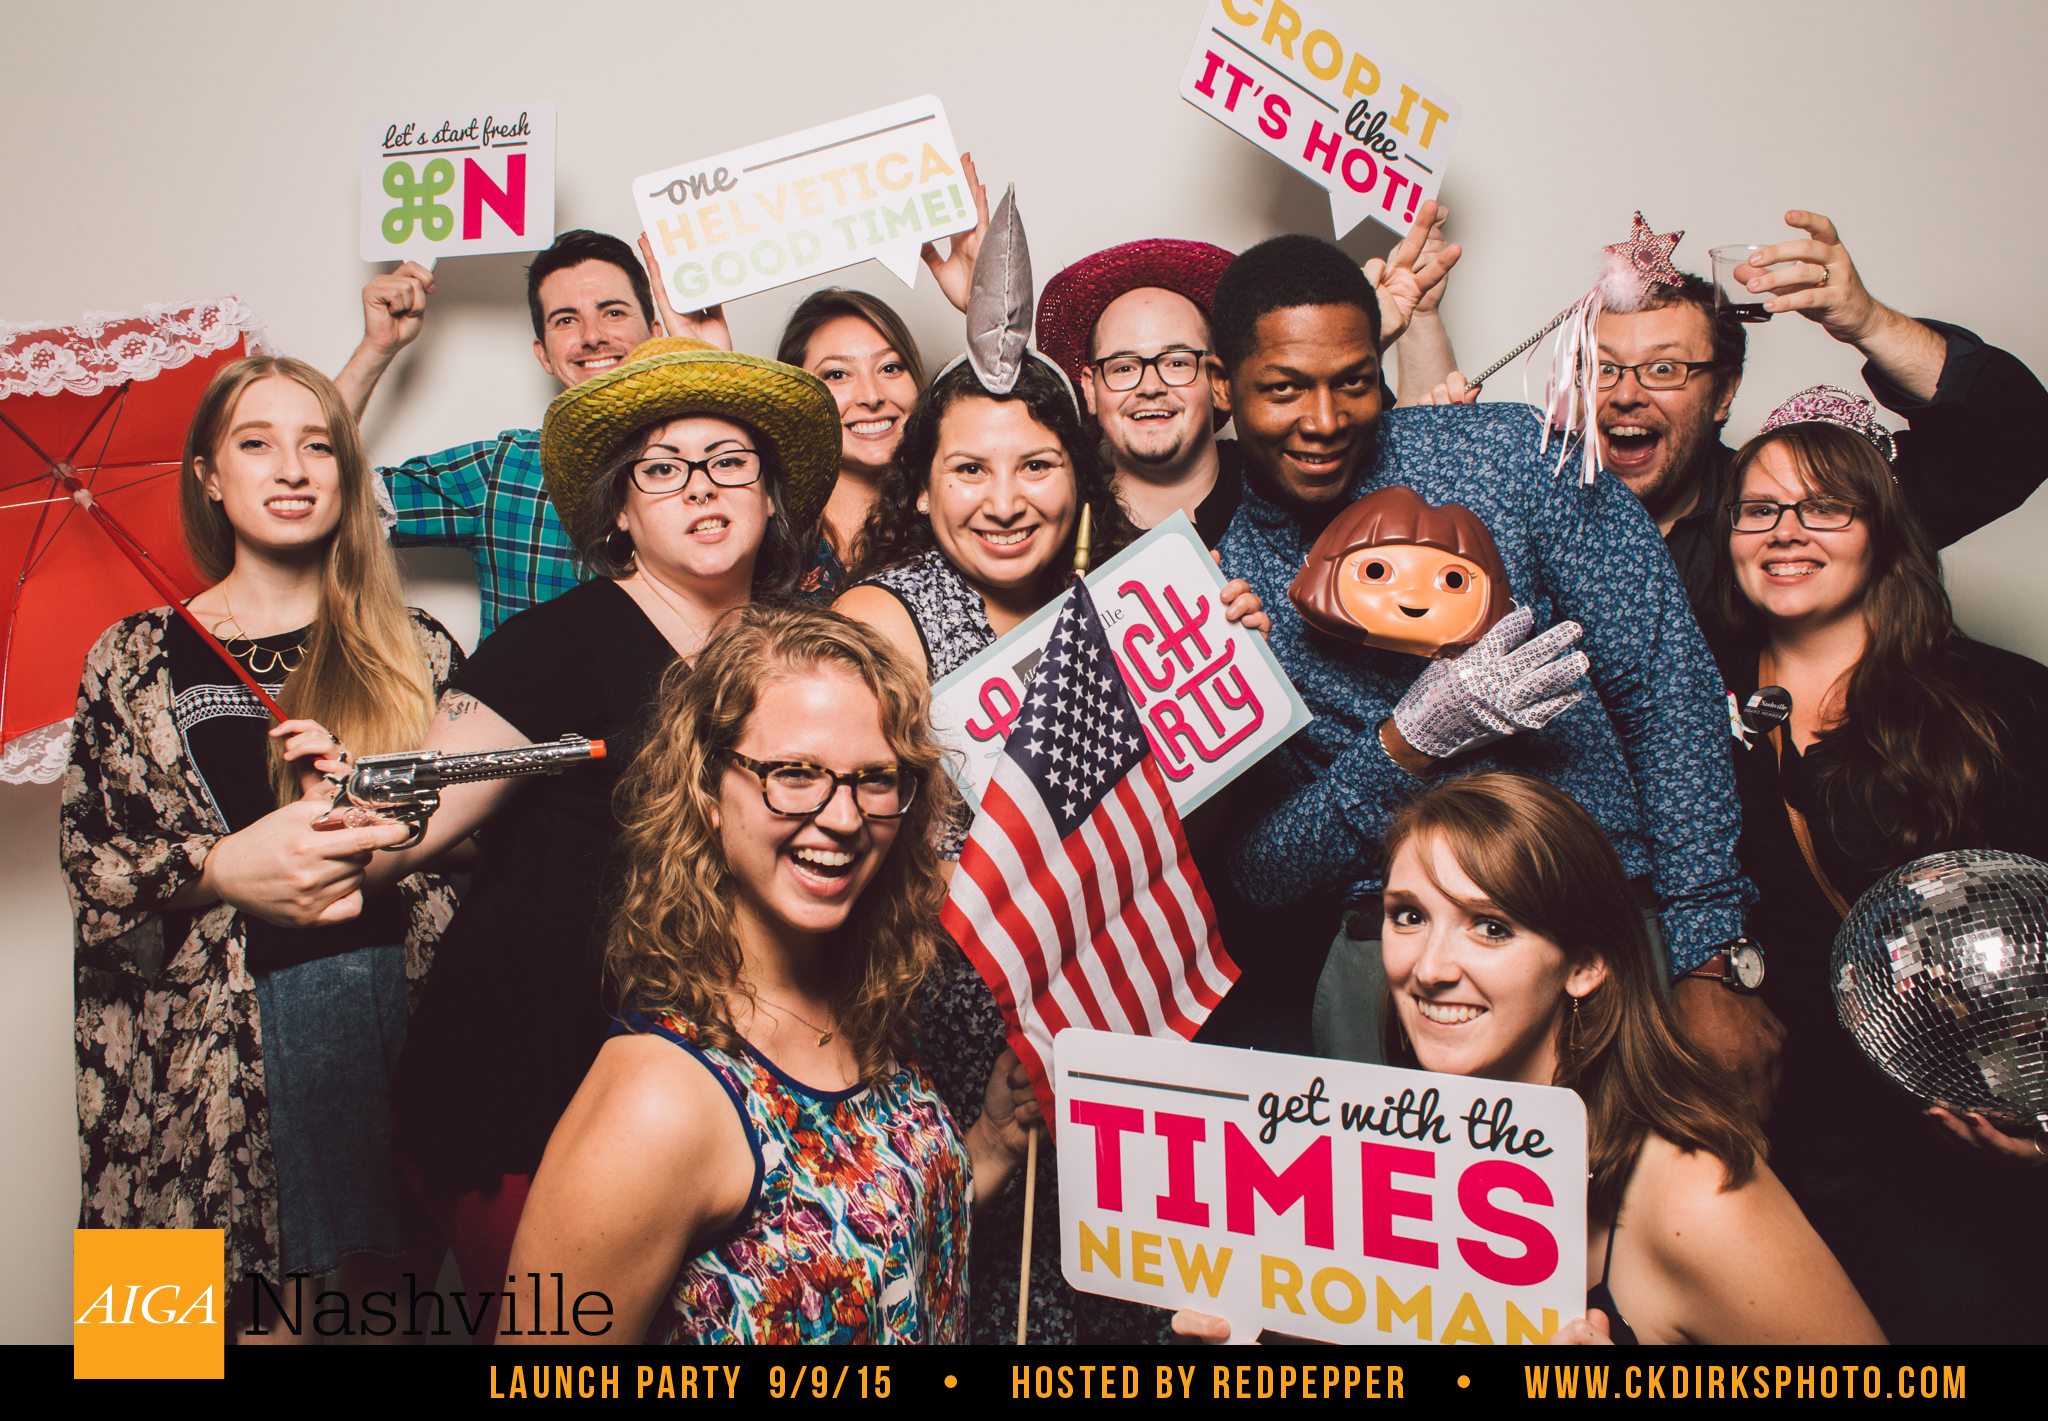 nashville-aiga-graphic-design-photobooth